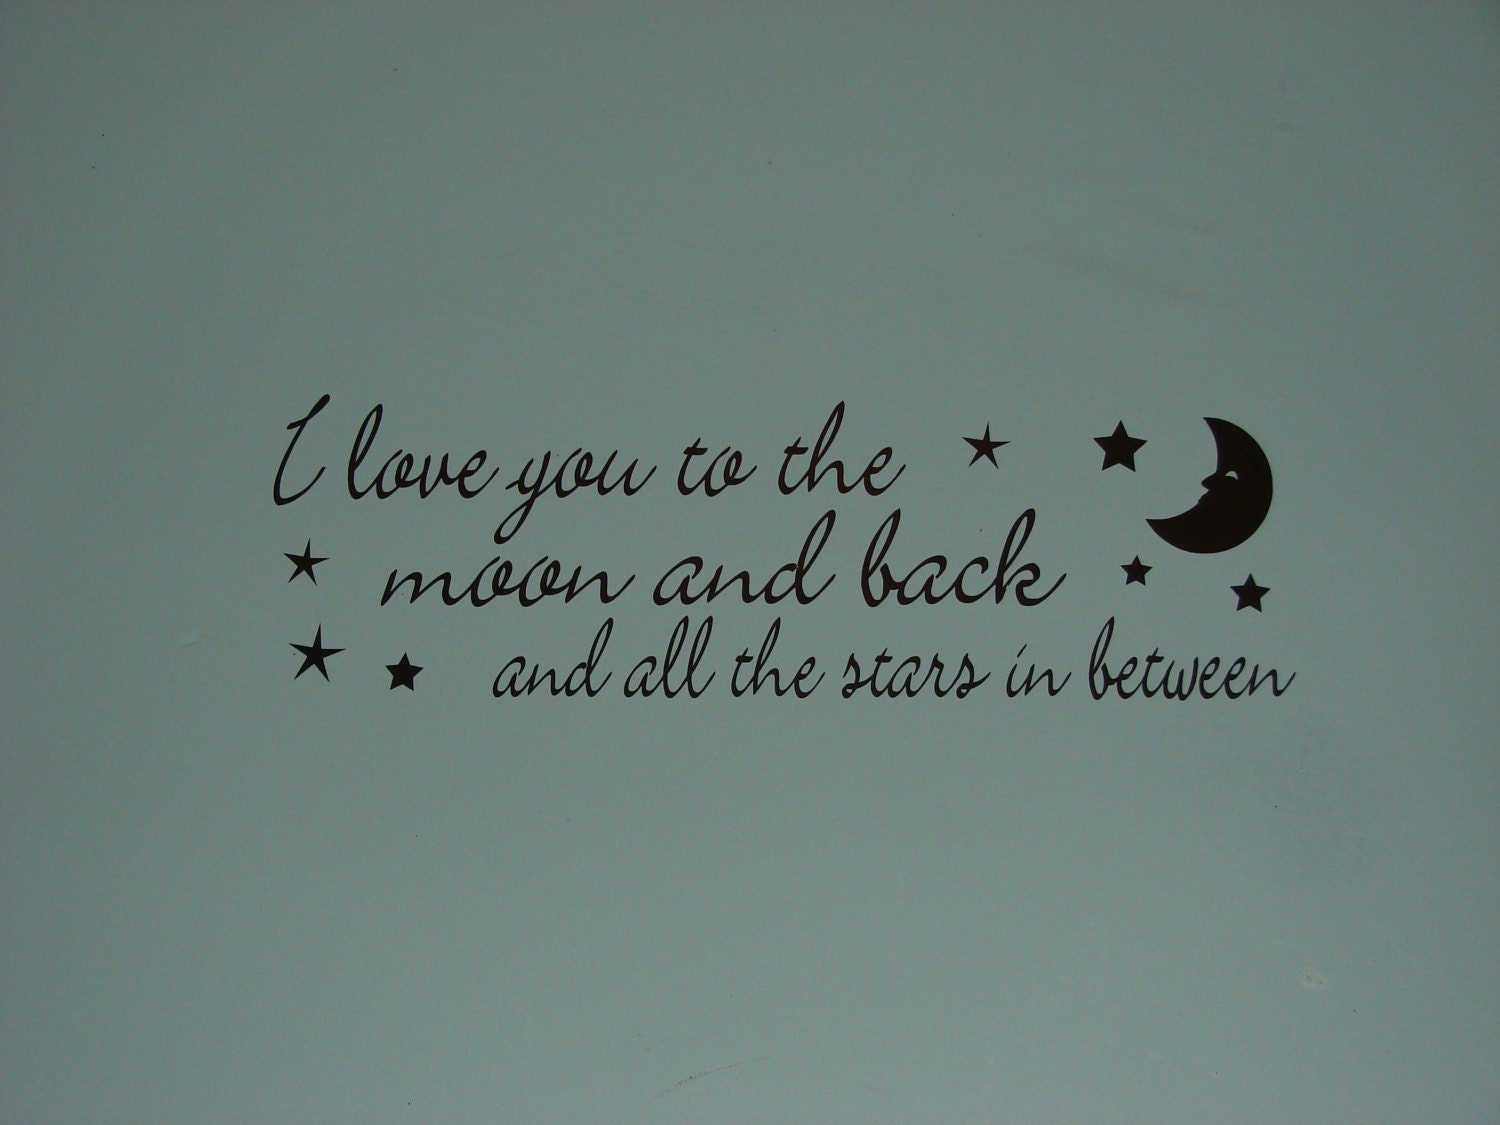 Quote I Love You To The Moon And Back I Love You To The Moon And Back And All The Stars In Between